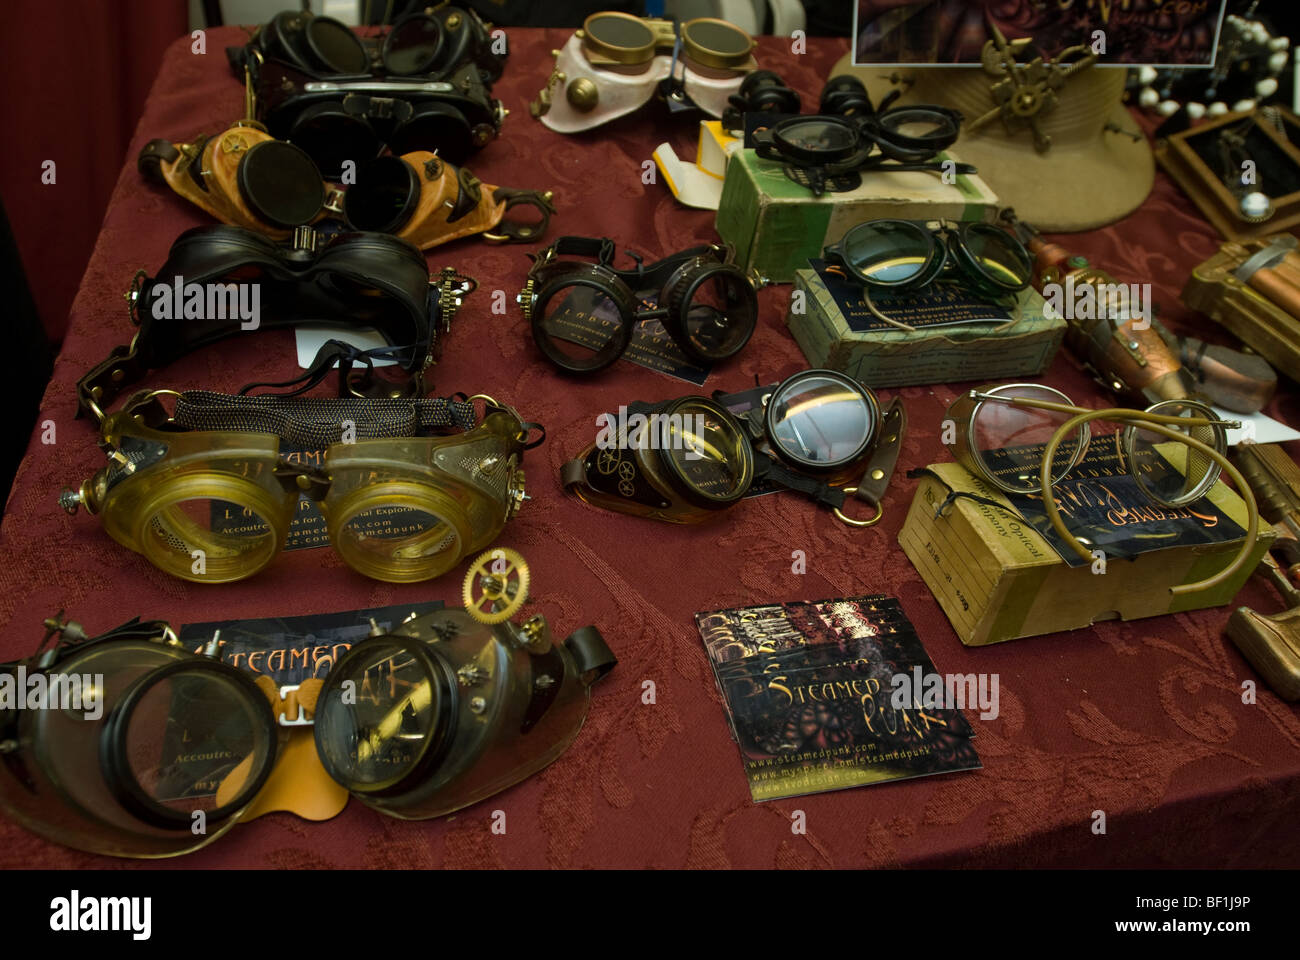 Steampunk accessories at the Brooklyn Indie Market in Brooklyn in New York - Stock Image